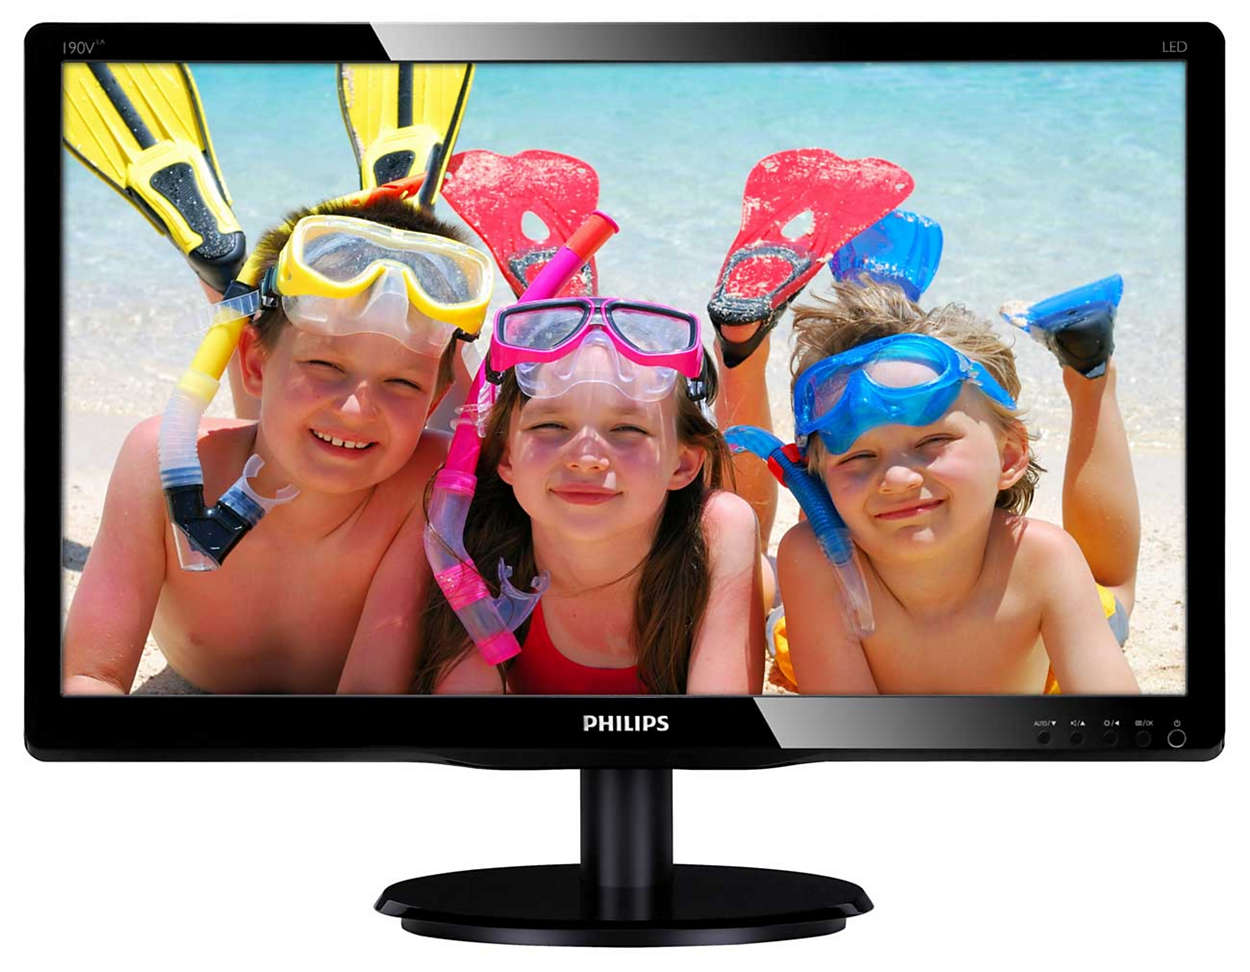 Enjoy great LED pictures in vivid colors